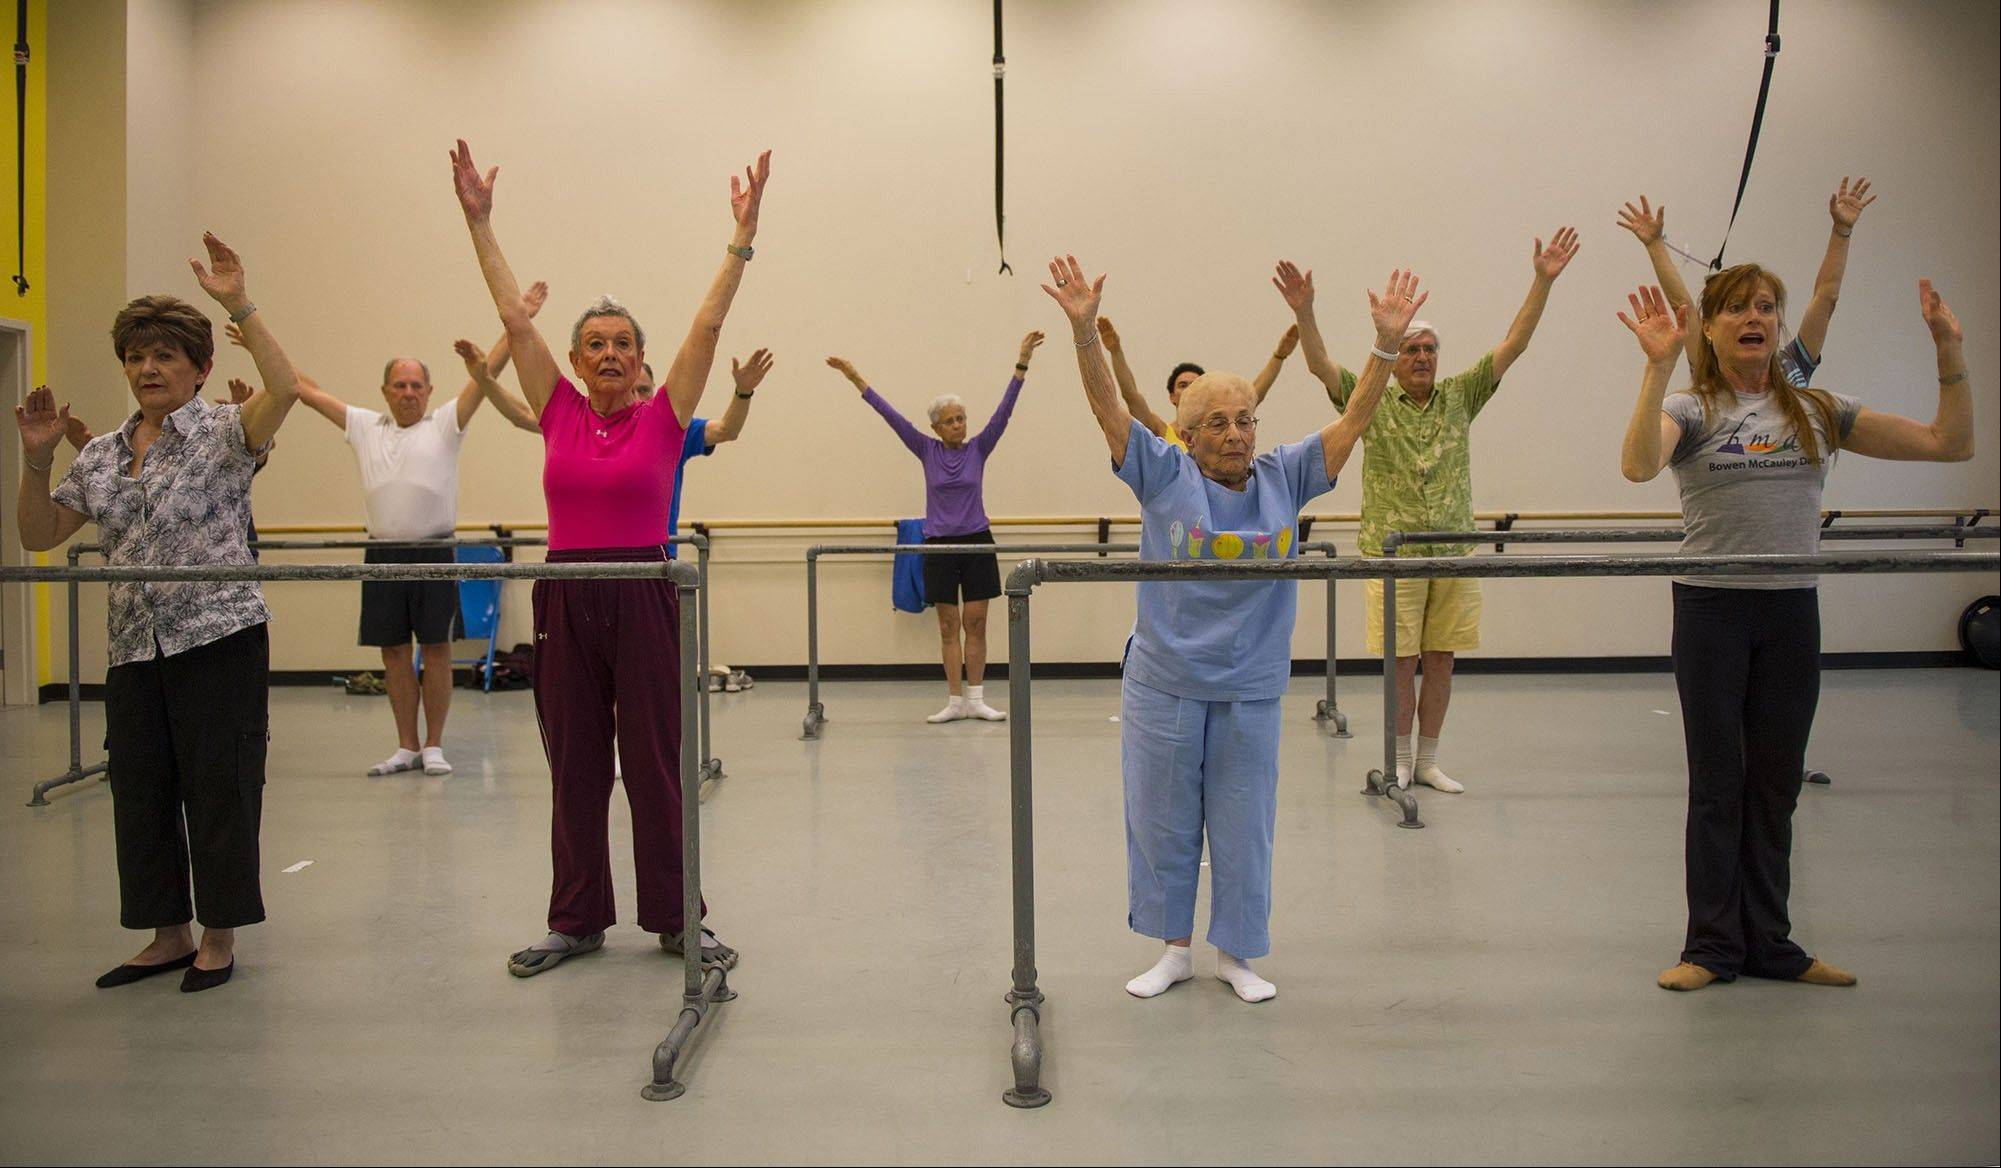 Dance instructor Lucy Bowen McCauley, right, leads her group of seniors in a variety of dance exercises during the Dance for Parkinson�s Disease class at the Maryland Youth Ballet in Silver Spring, Md.